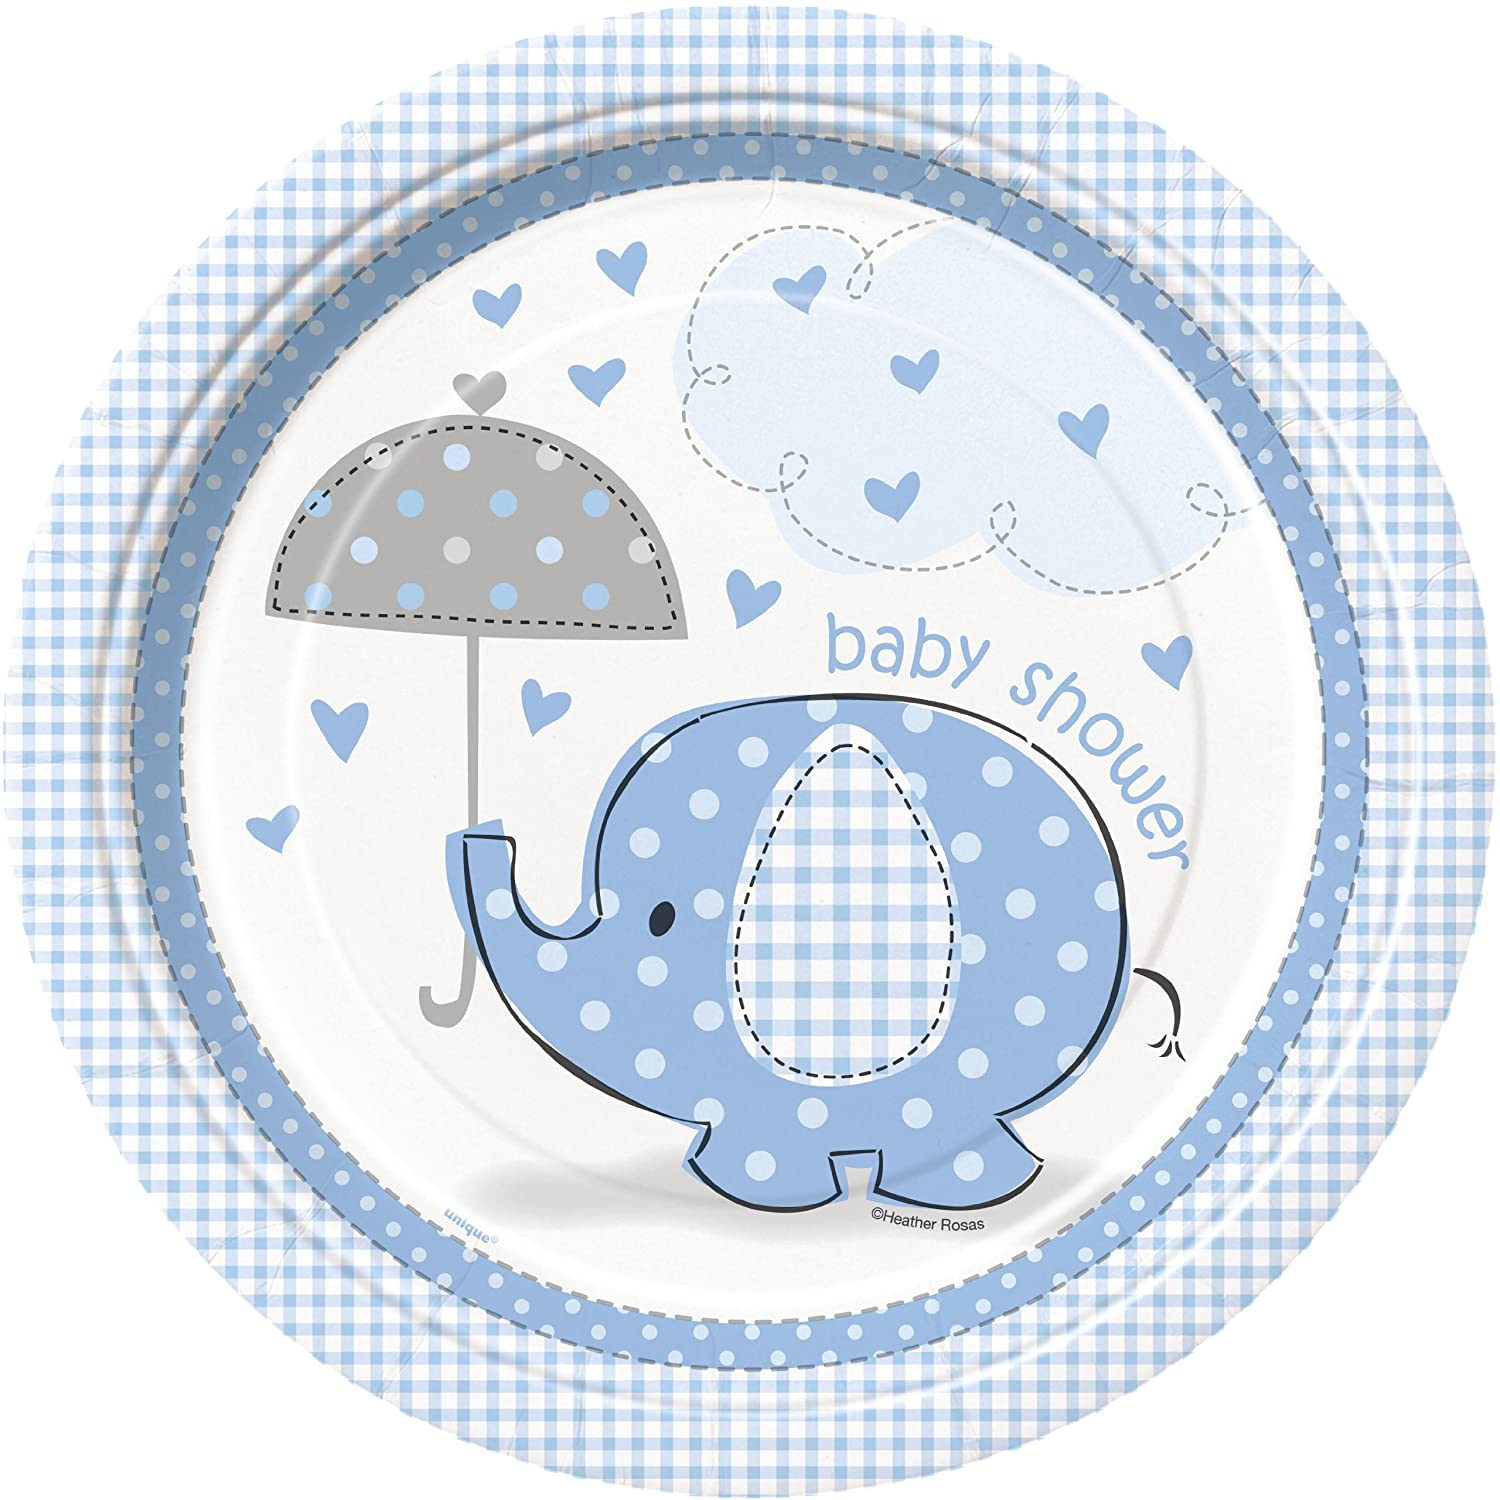 Amazon.com: Blue Elephant Boy Baby Shower Dinner Plates, 8ct ...